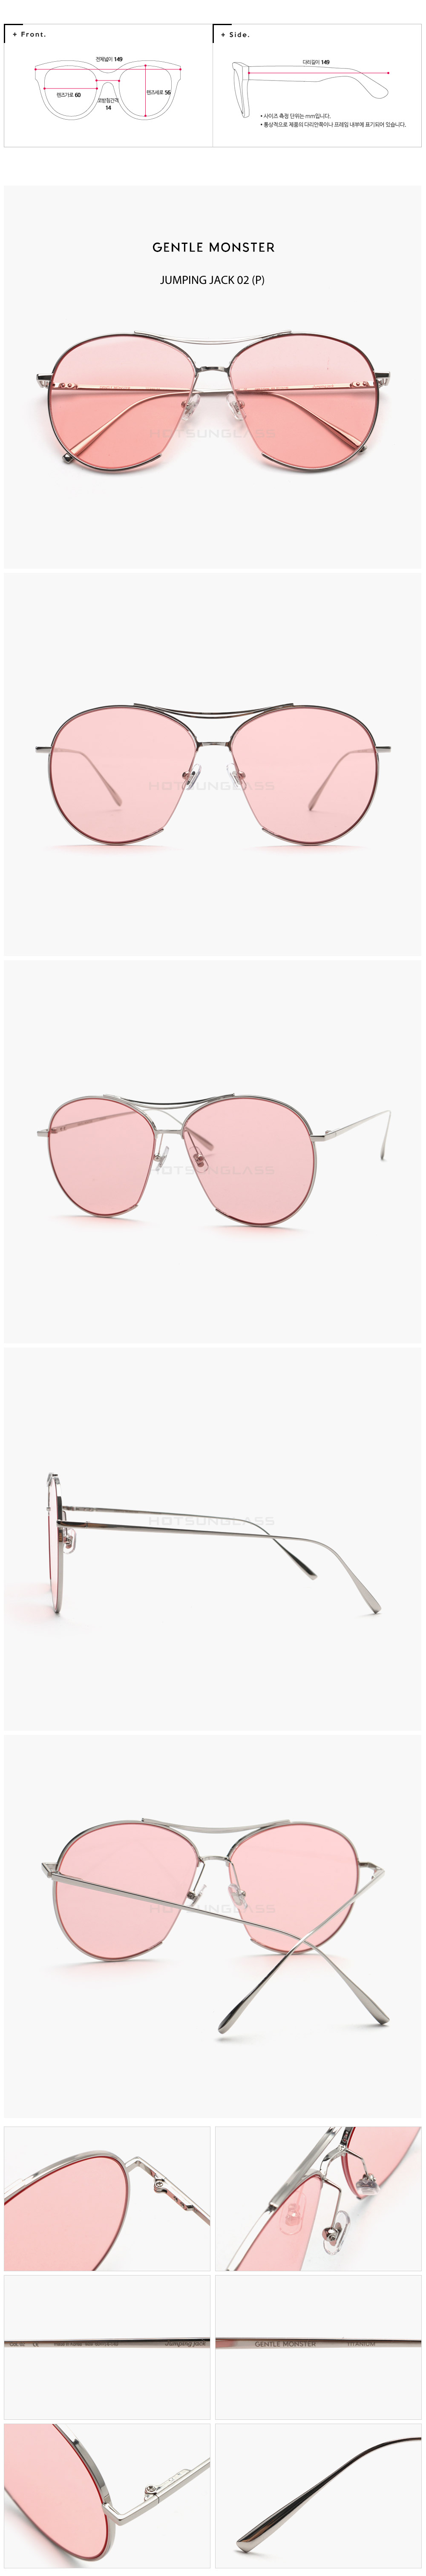 4de15ec78b JUMPING JACK 02 (P).  GENTLE MONSTER  JUMPING JACK 02(G) Rimless Panel Gray-Tinted  Aviator Shades